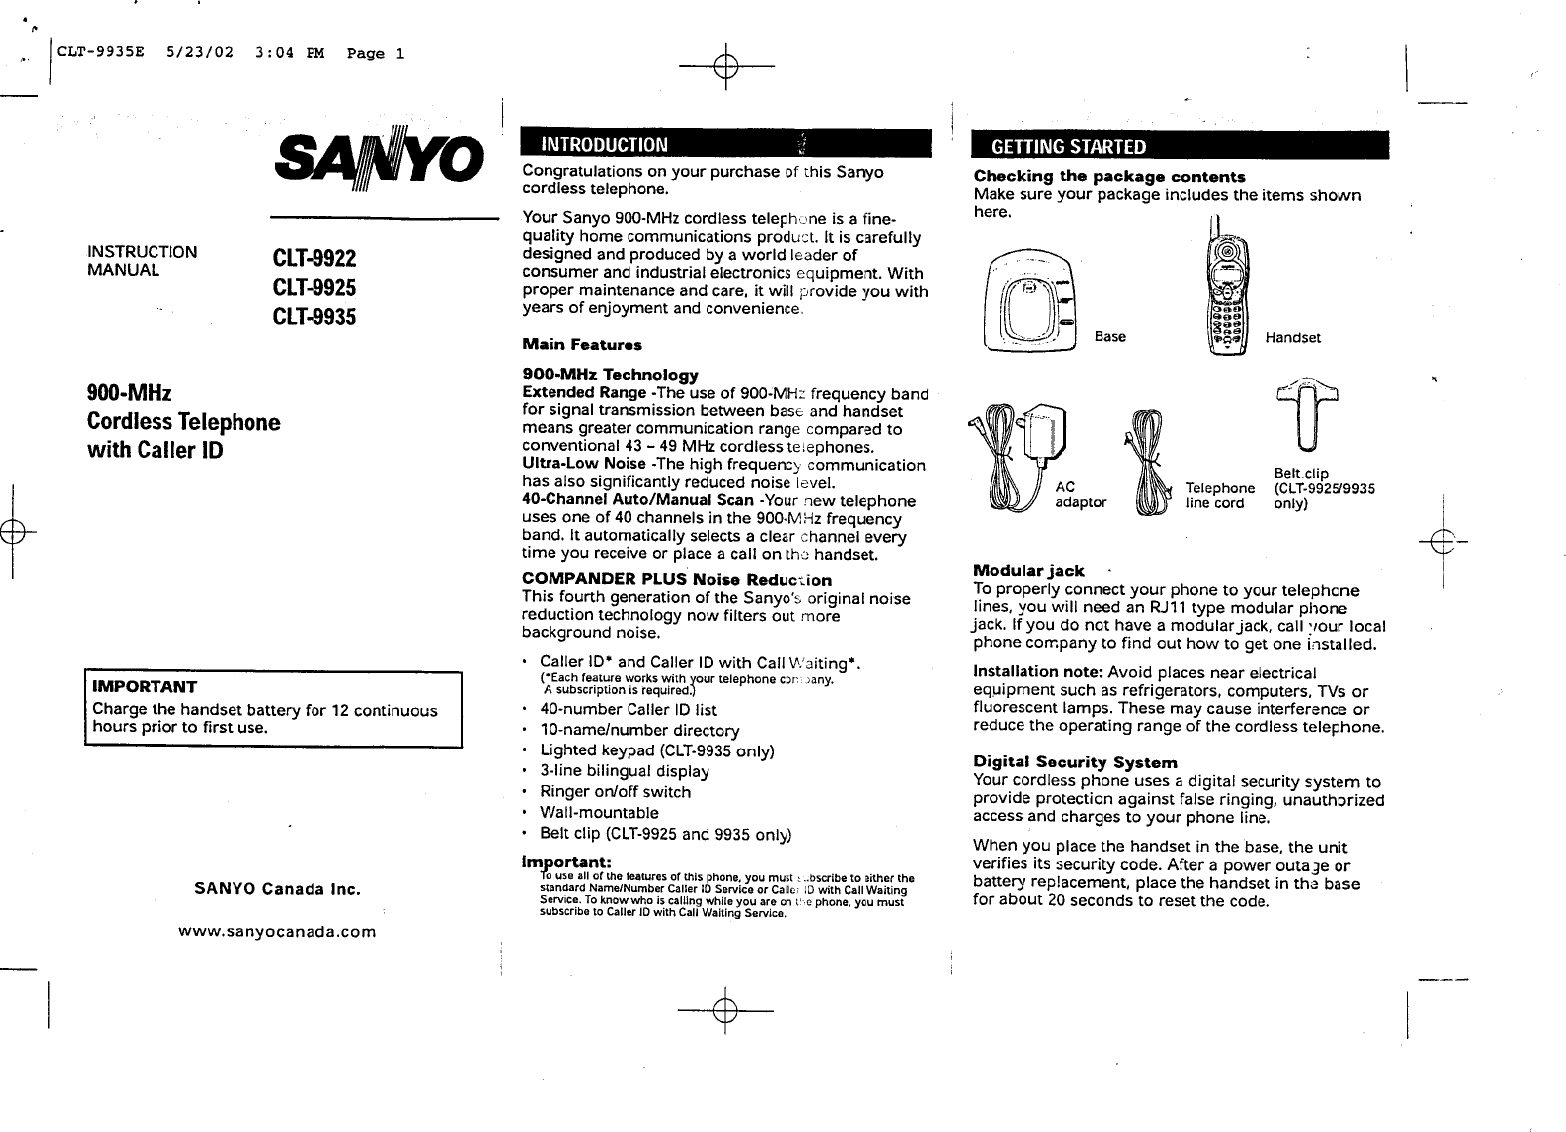 sanyo model scp-6780 user manual